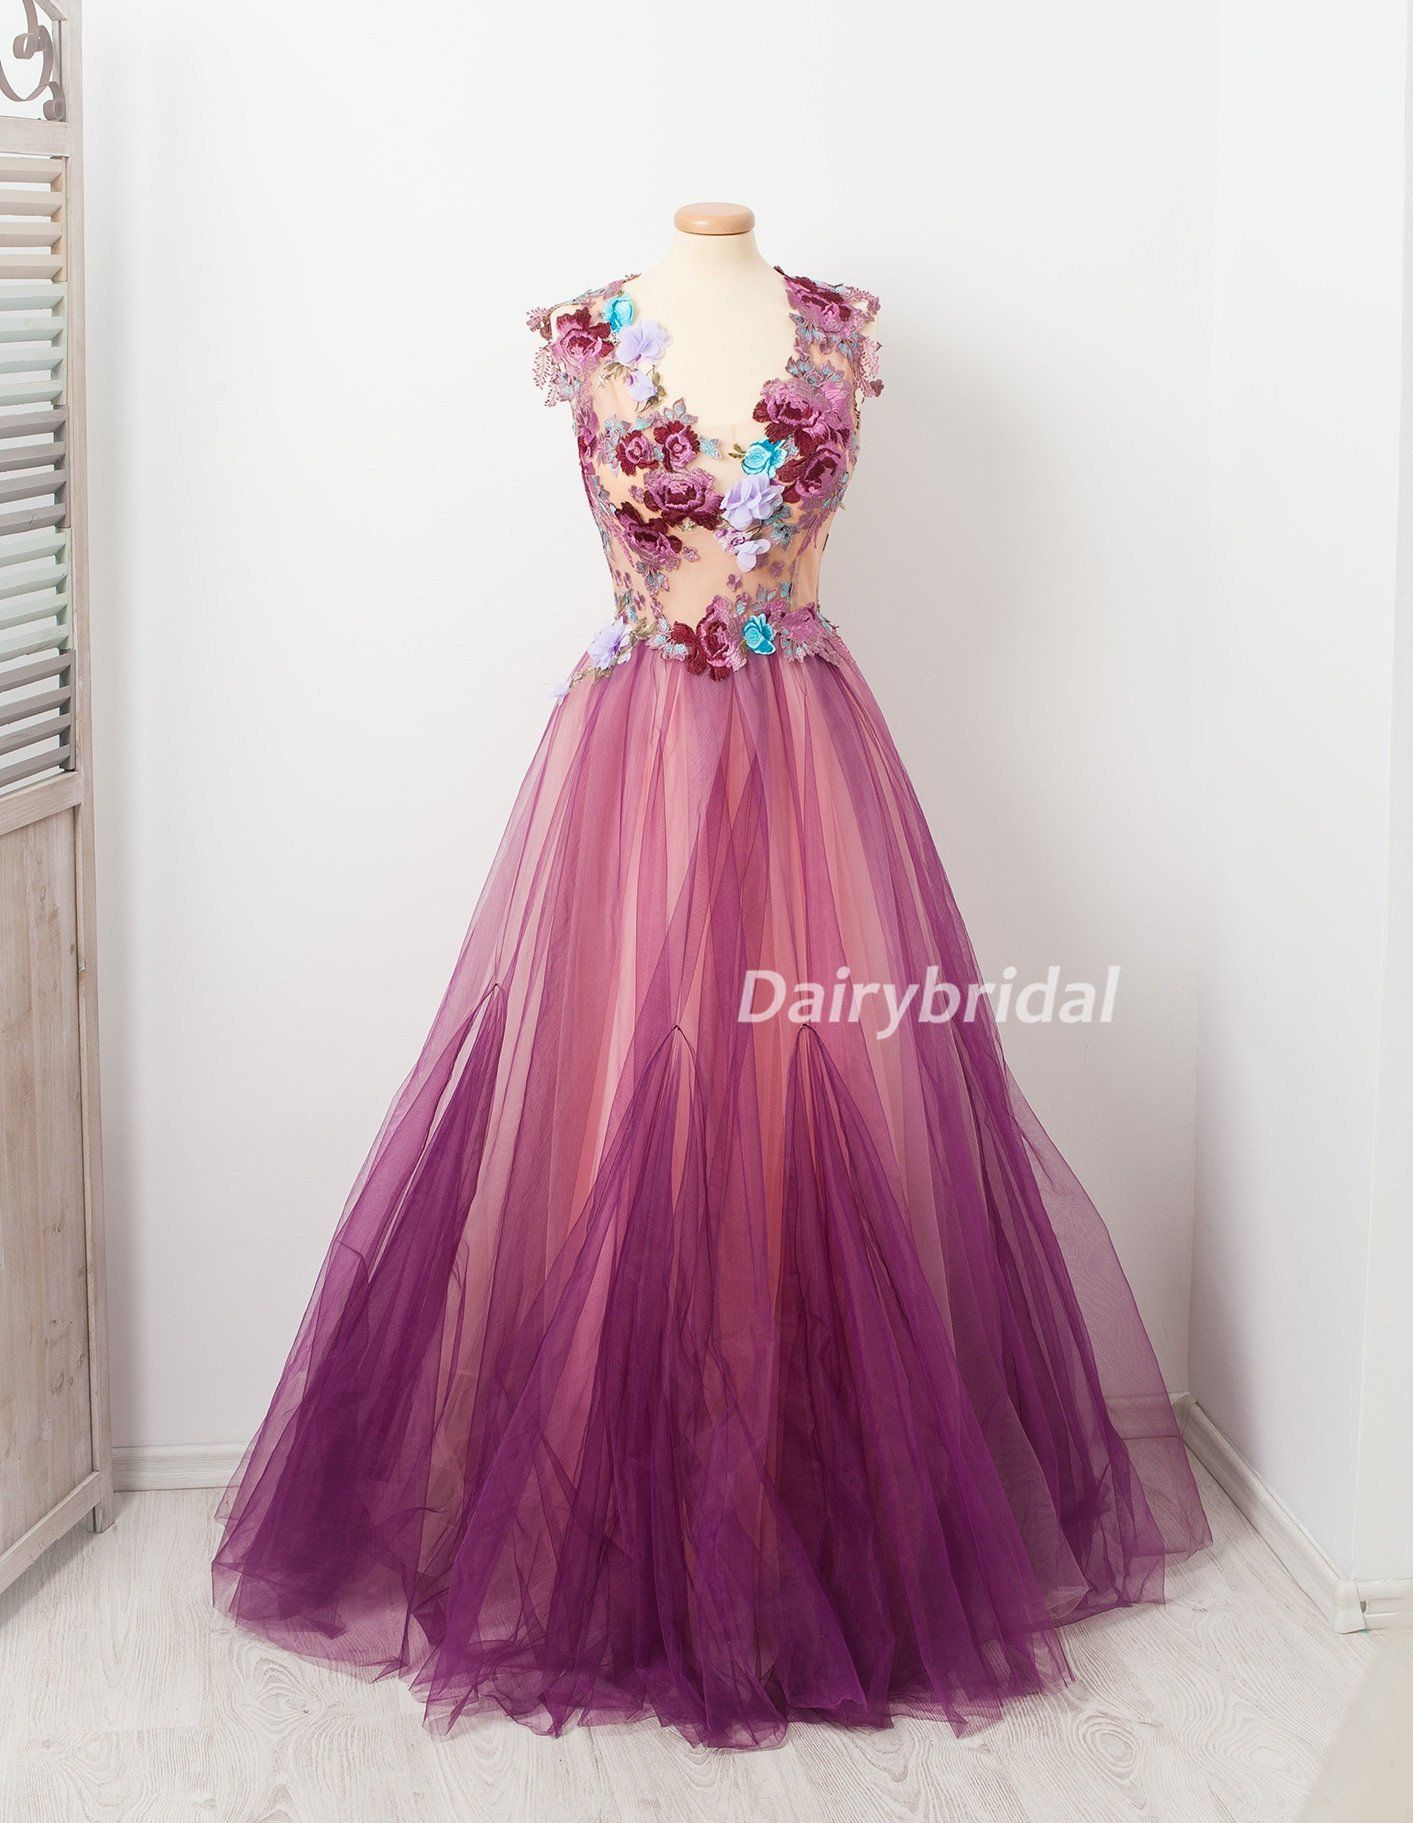 Charming applique aline prom dress honeast tulle prom dress d